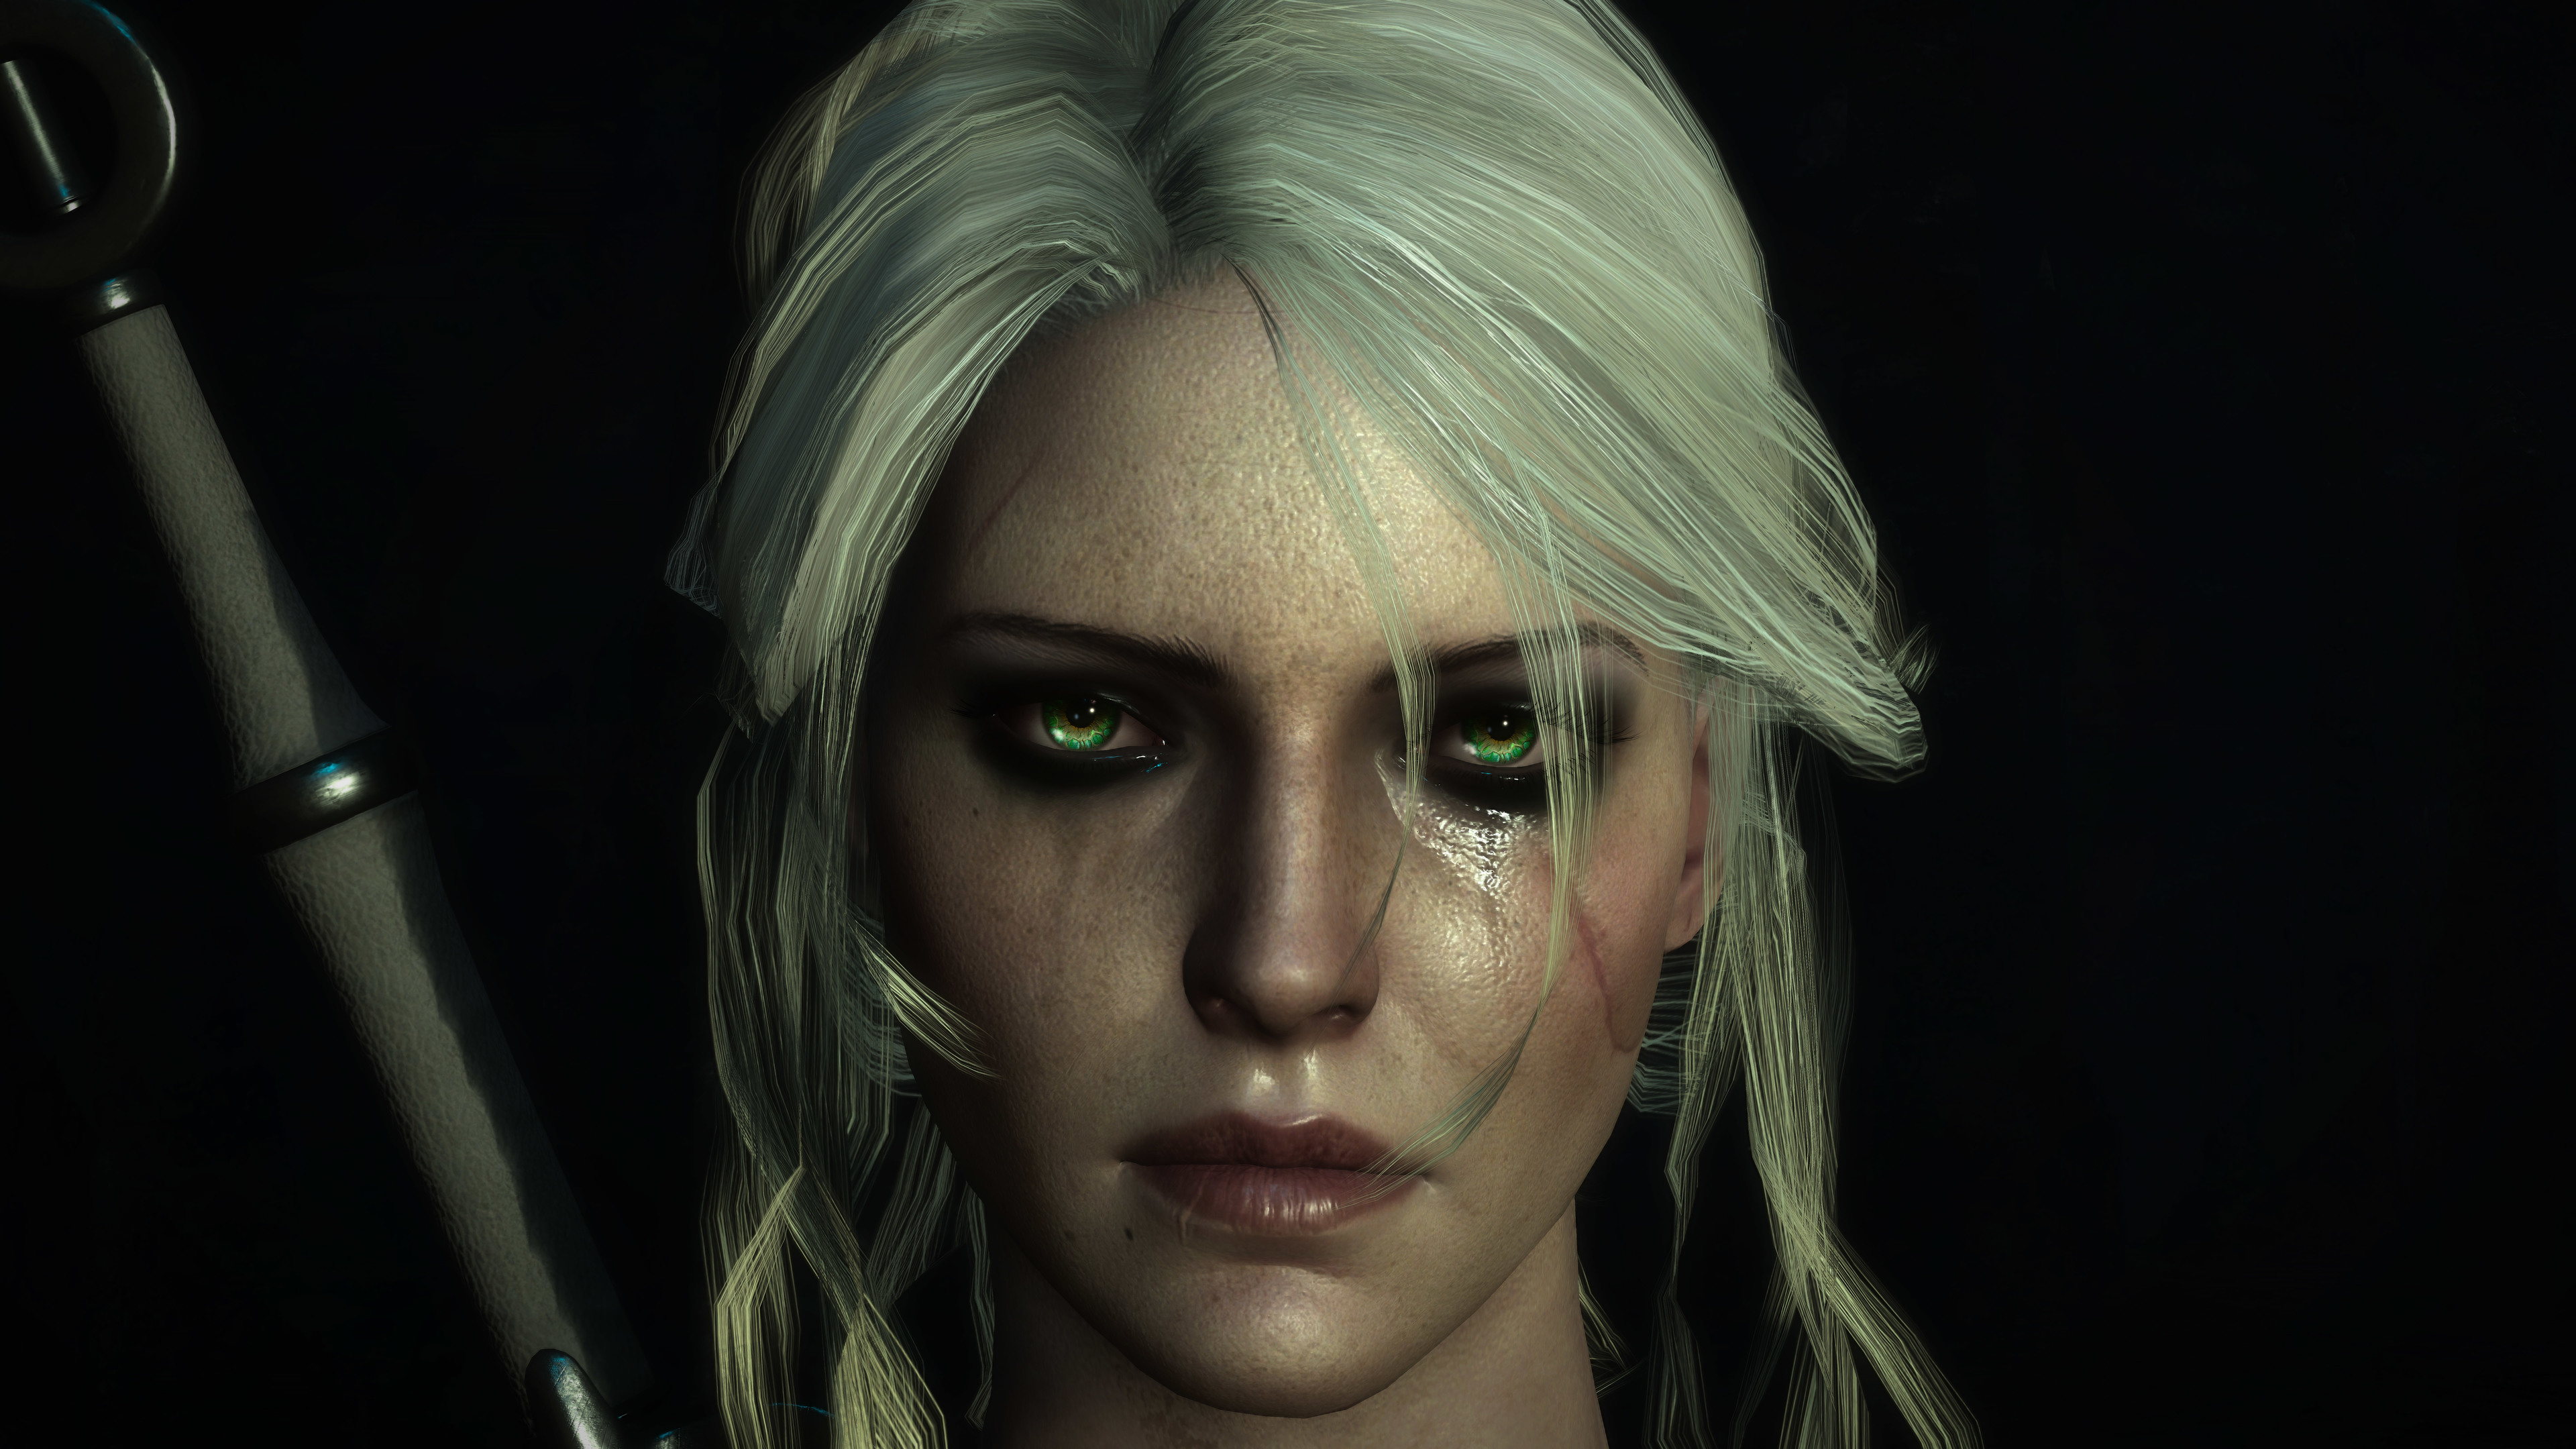 the witcher 3 ciri 10k 1538343691 - The Witcher 3 Ciri 10k - xbox games wallpapers, the witcher 3 wallpapers, ps4 games wallpapers, pc games wallpapers, hd-wallpapers, games wallpapers, ciri wallpapers, 8k wallpapers, 5k wallpapers, 4k-wallpapers, 10k wallpapers